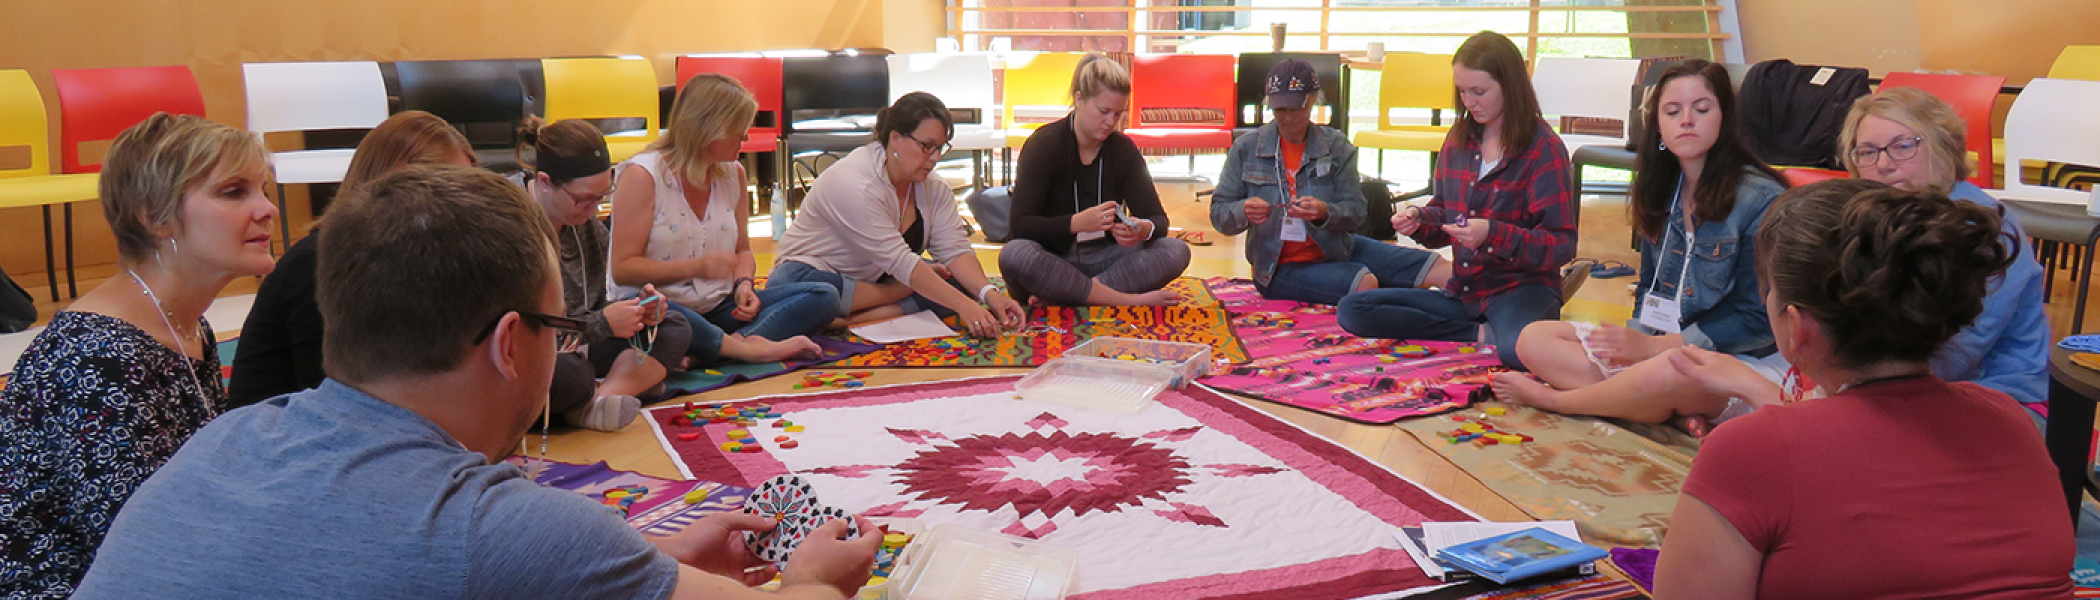 Teachers sitting in a circle working on Indigenous crafts